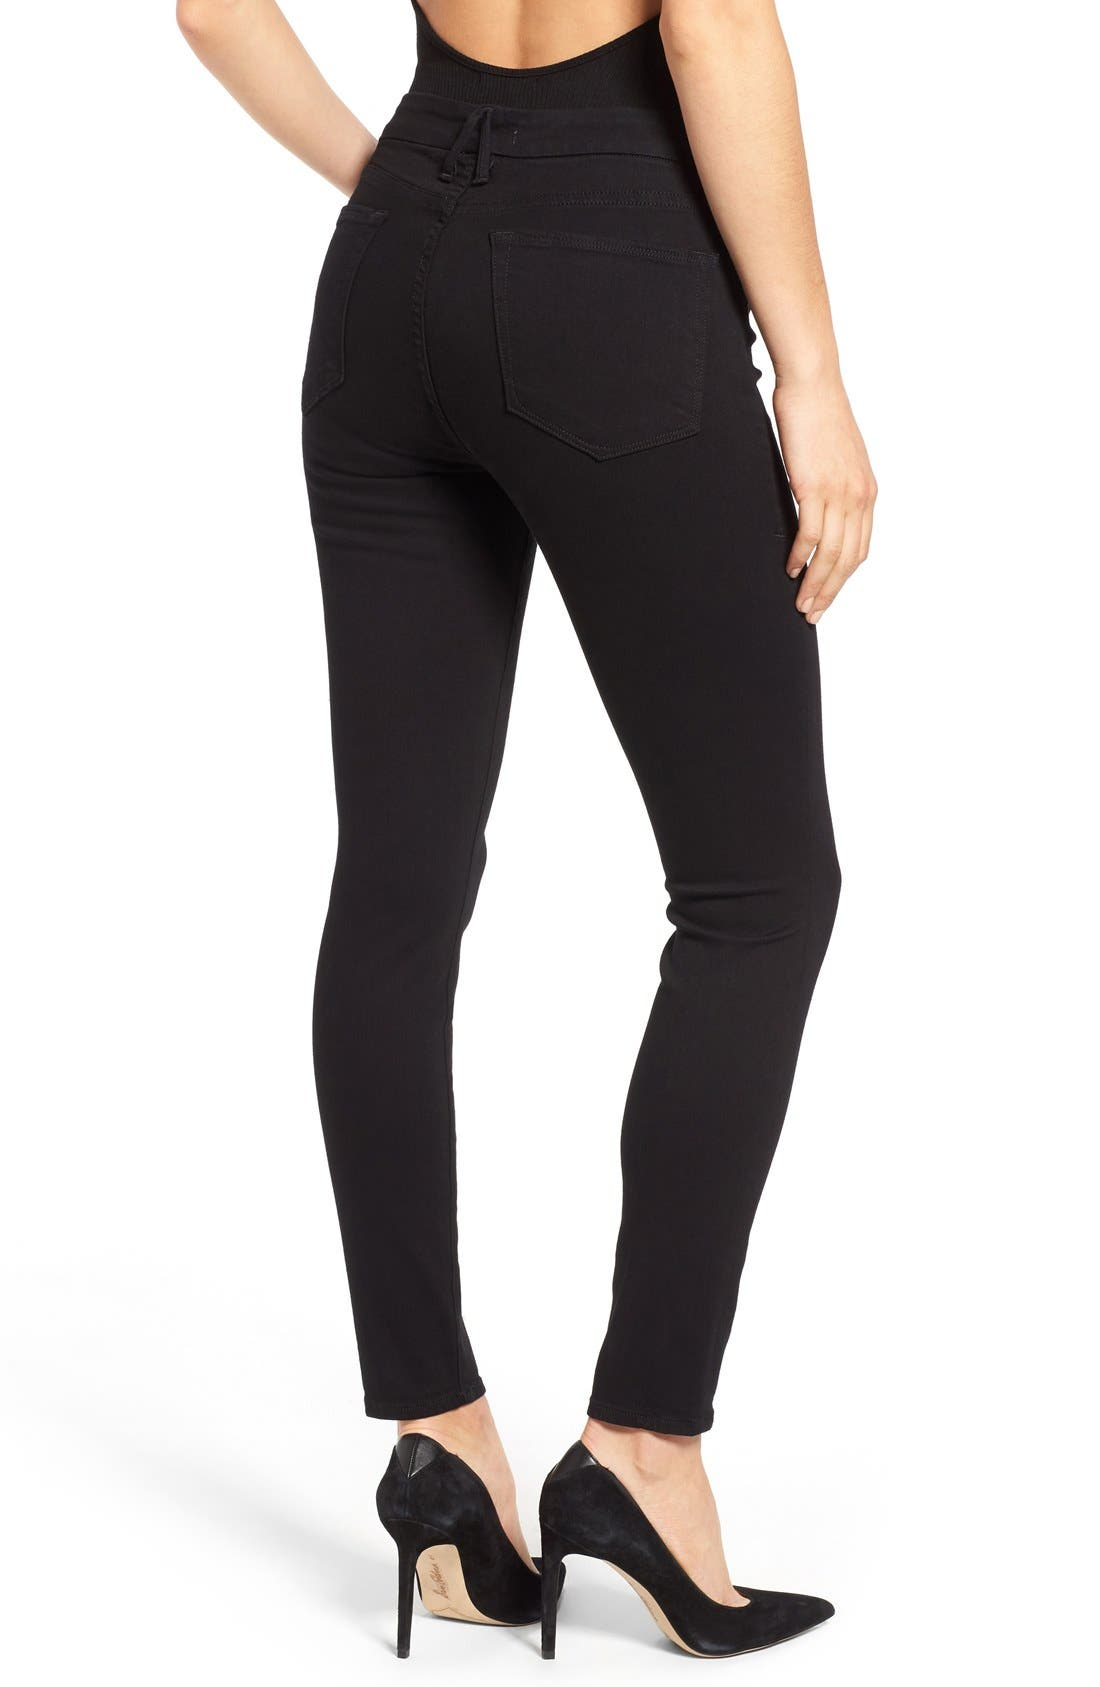 Alternate Image 2  - Good American Good Legs High Rise Skinny Jeans (Black 001)